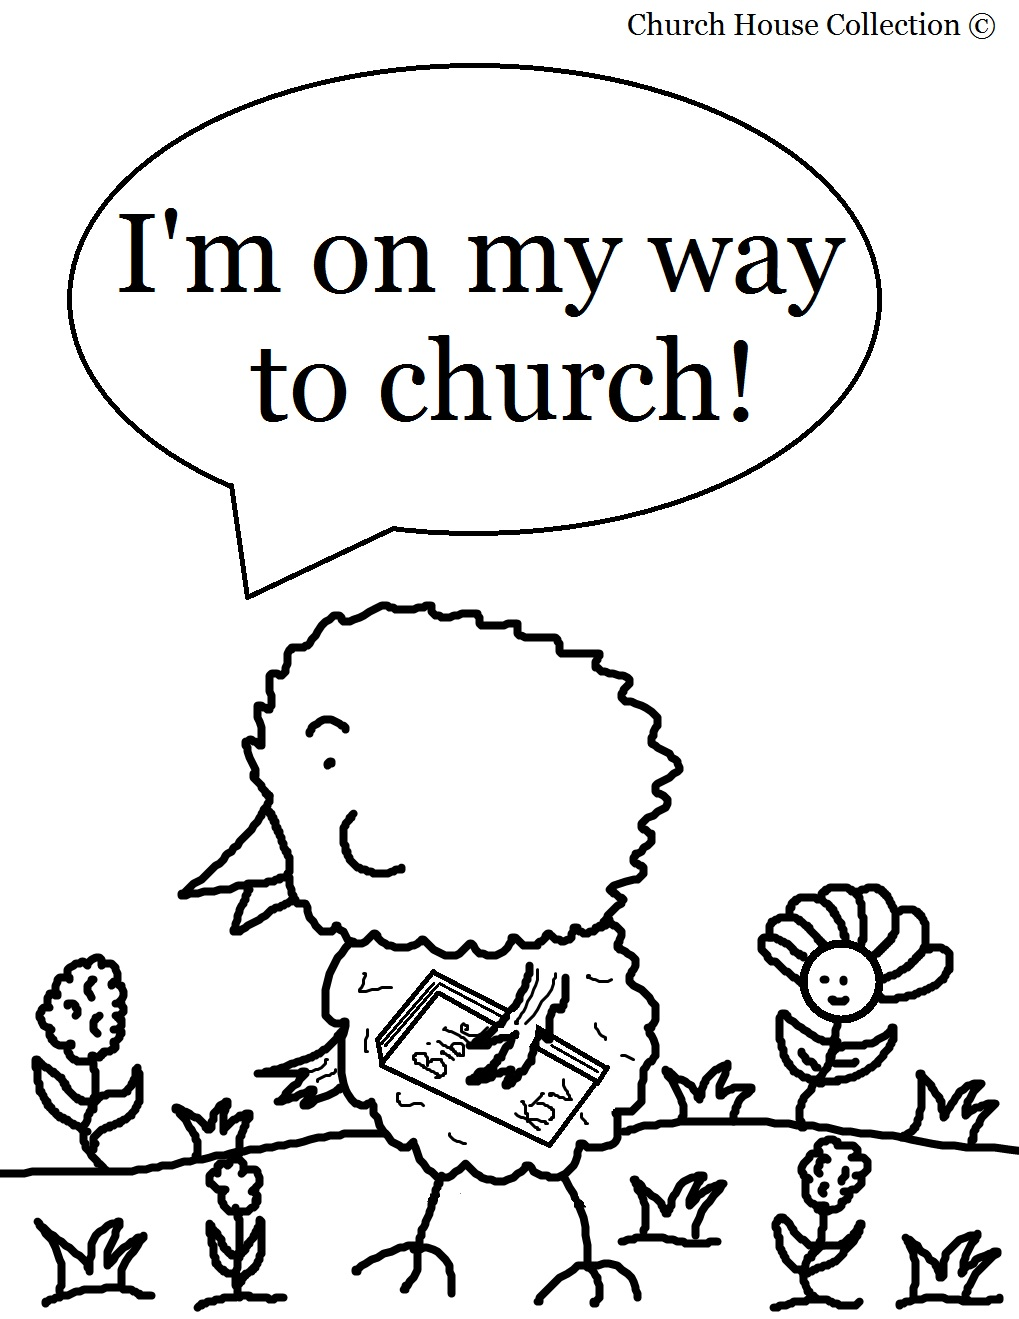 Church House Collection Blog Easter Chick Coloring Page Sunday School Printable Coloring Pages